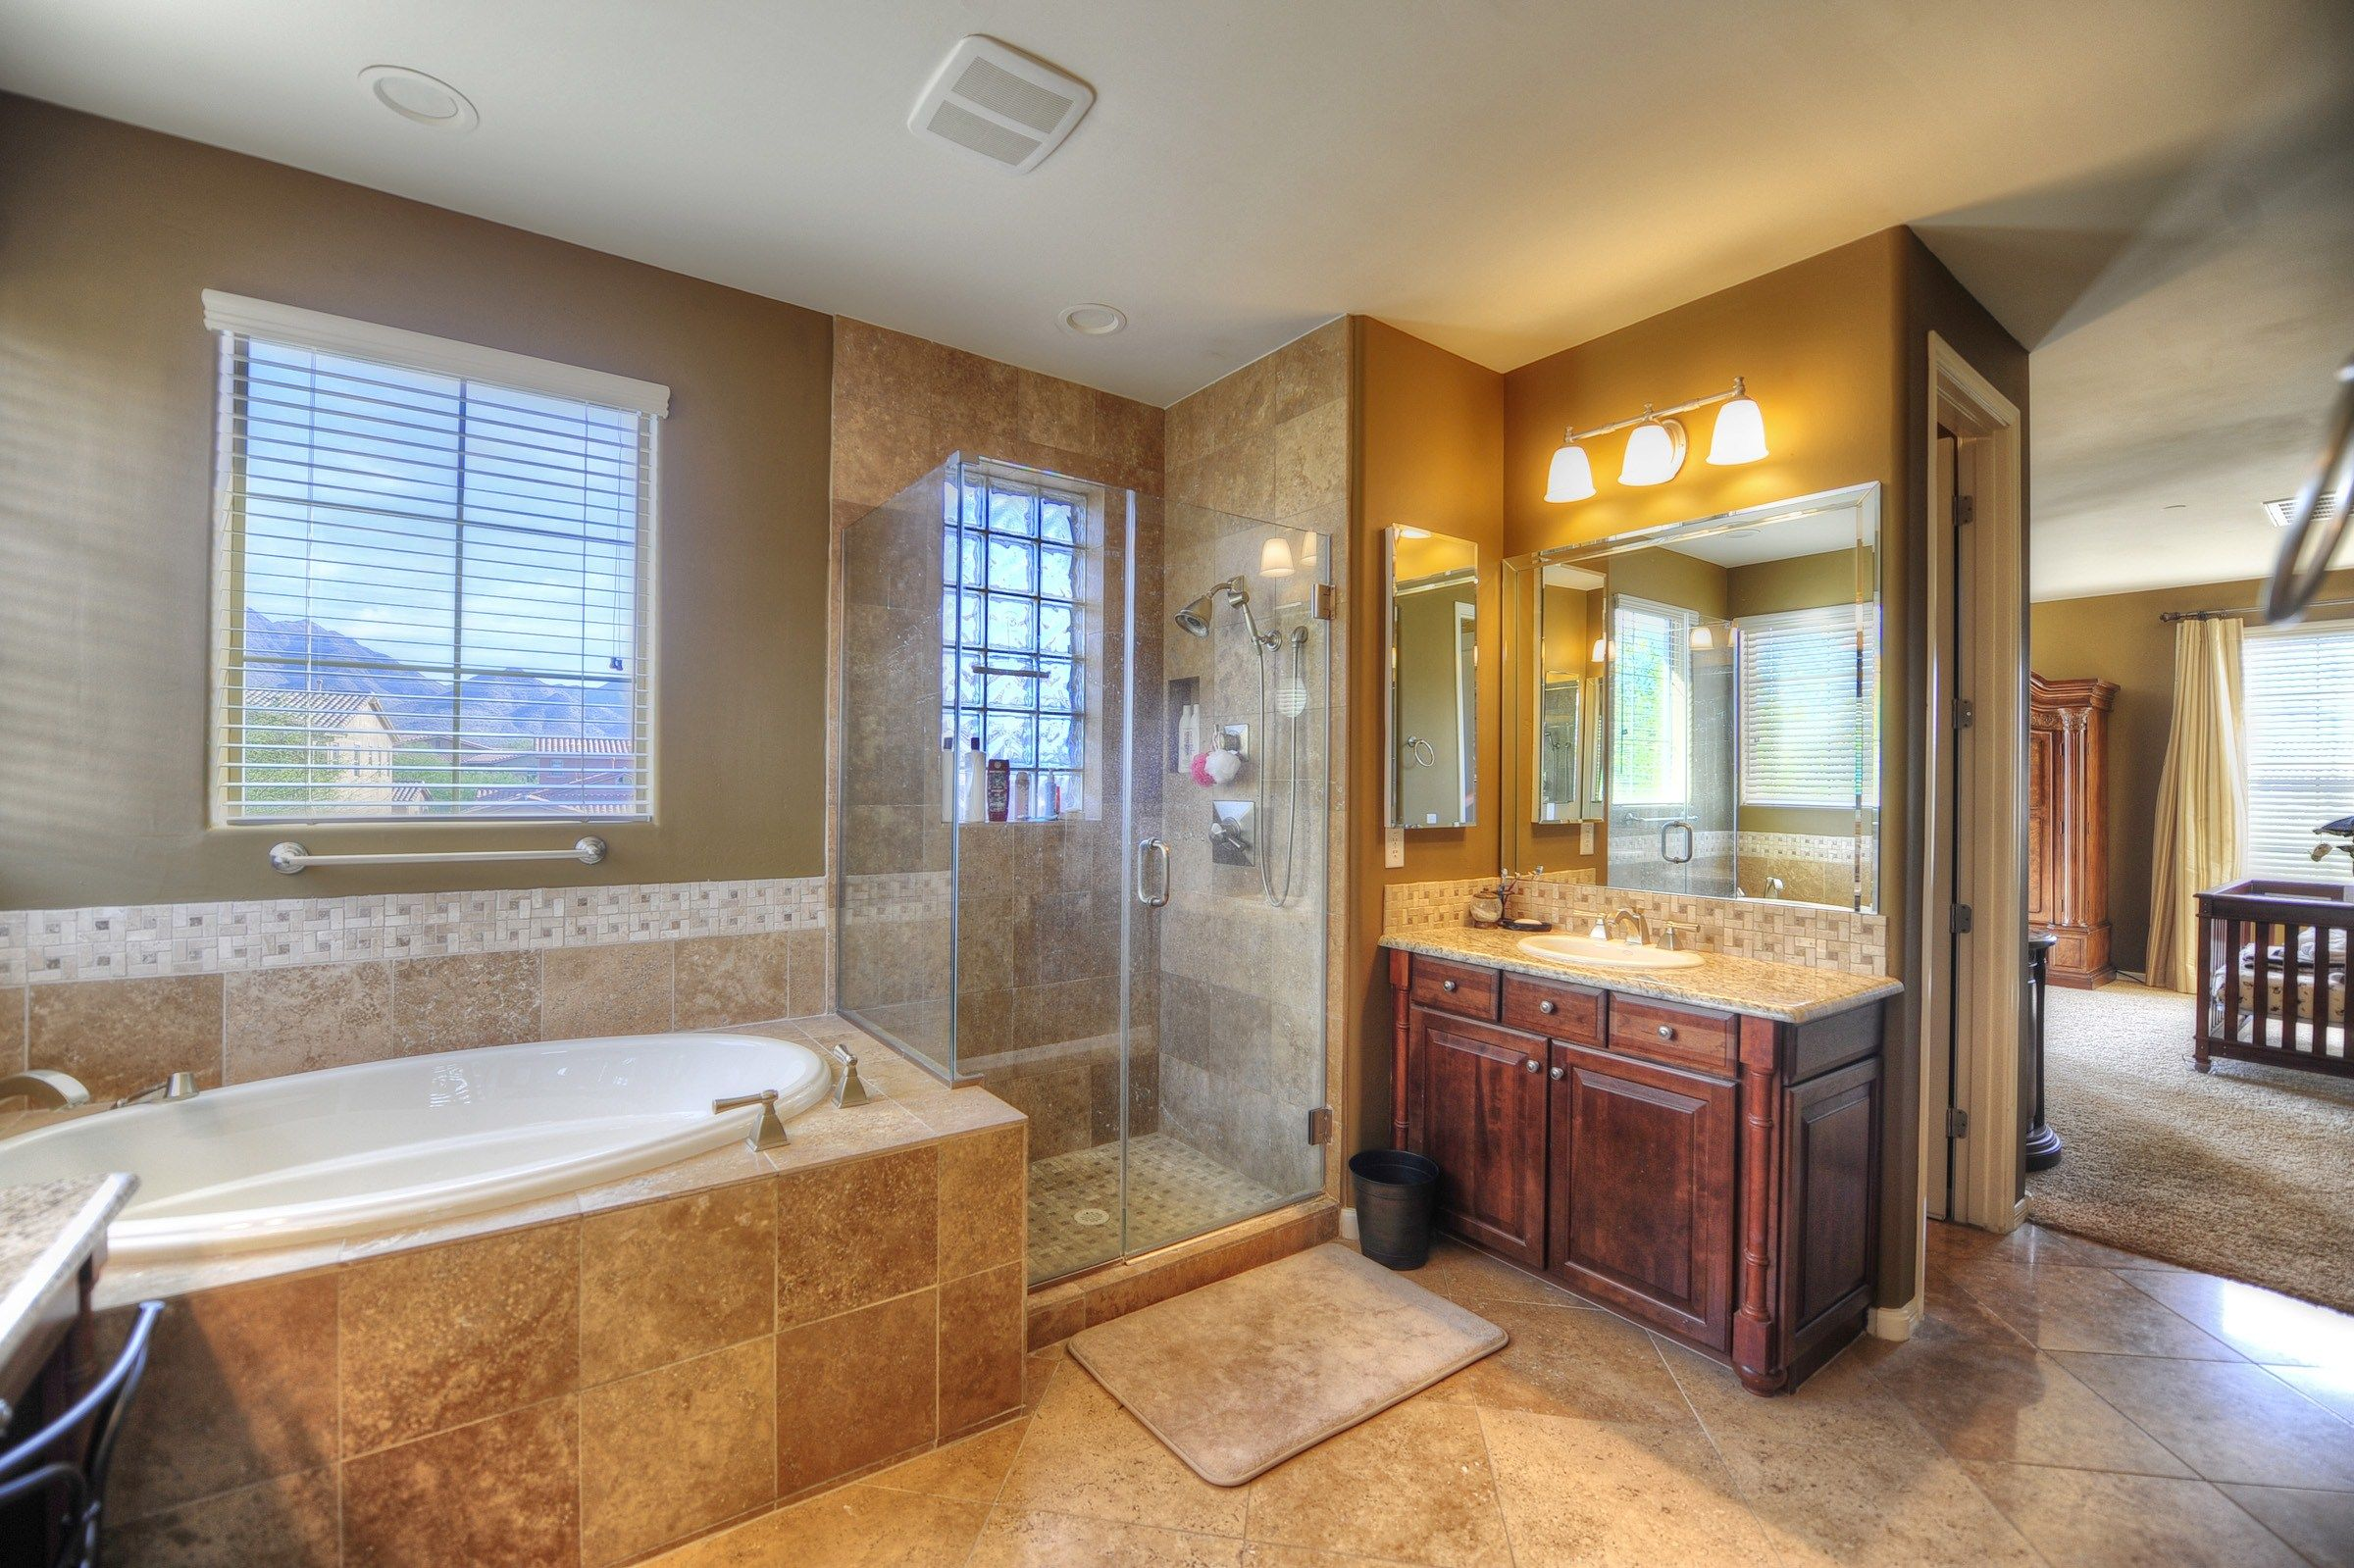 Lavish Master Bathroom With Soaking Tub Shower And Travertine